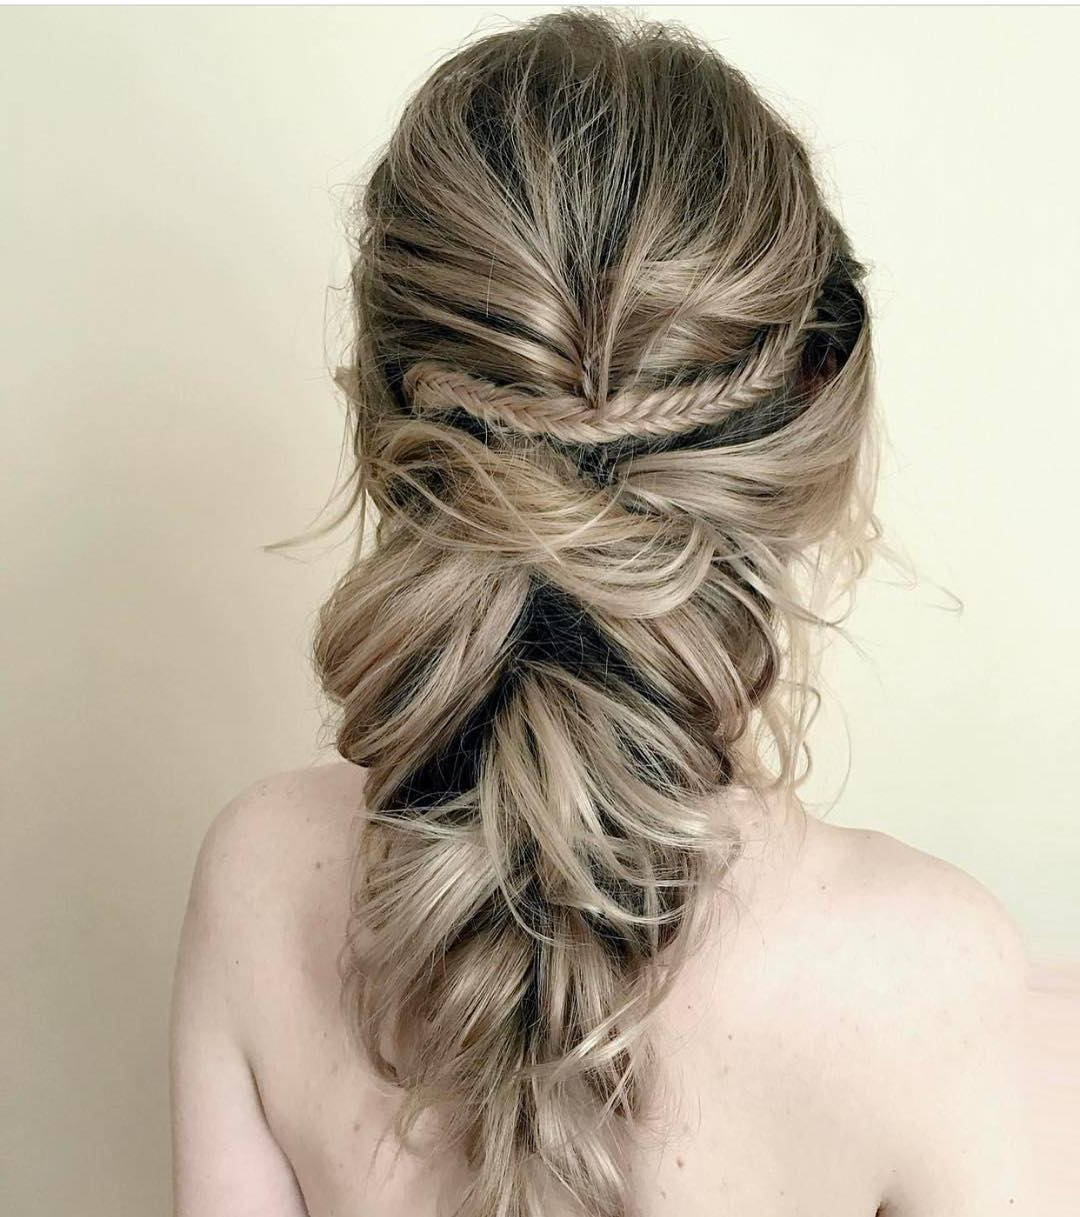 Preferred Curvy Braid Hairstyles And Long Tails With 10 Braided Hairstyles For Long Hair – Weddings, Festivals (Gallery 18 of 20)